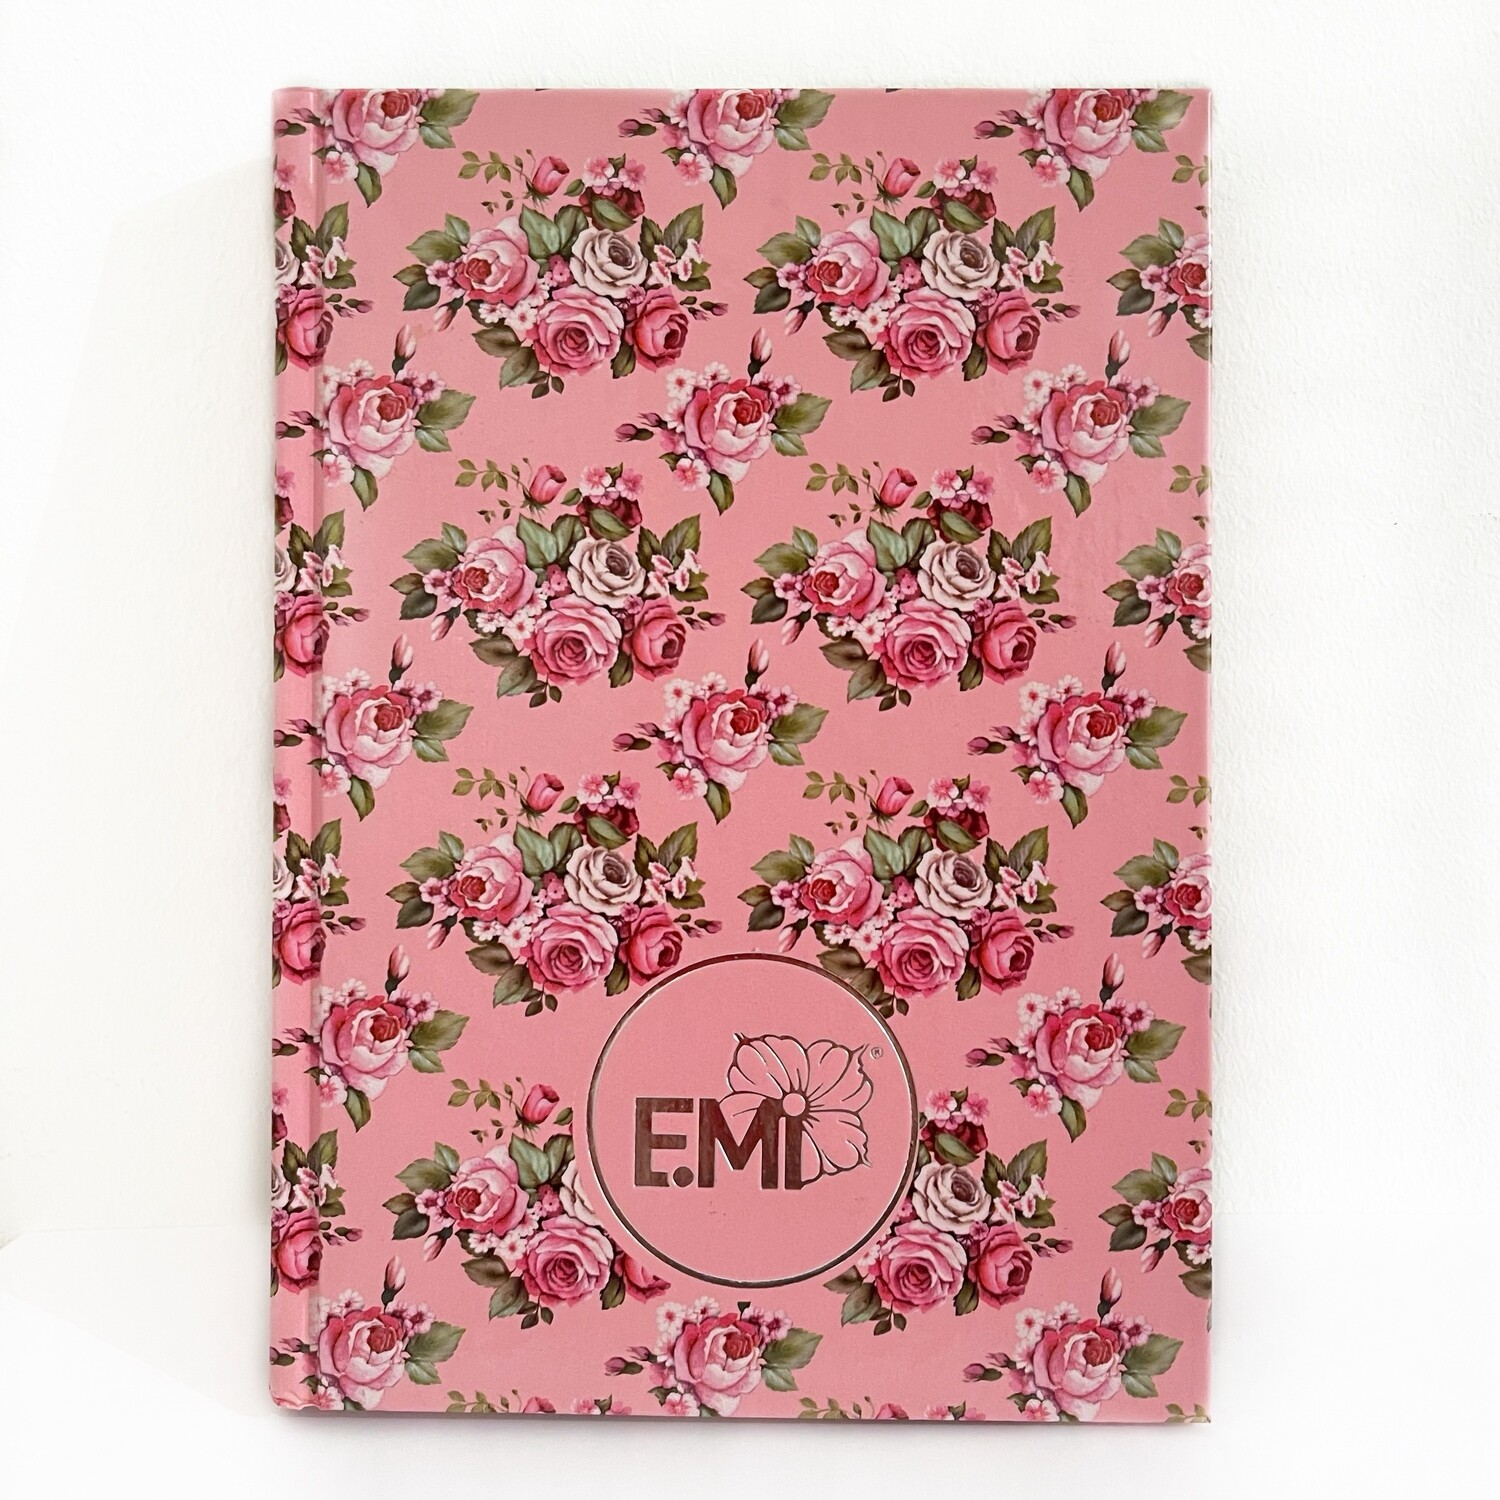 Day planner pink with roses E.Mi